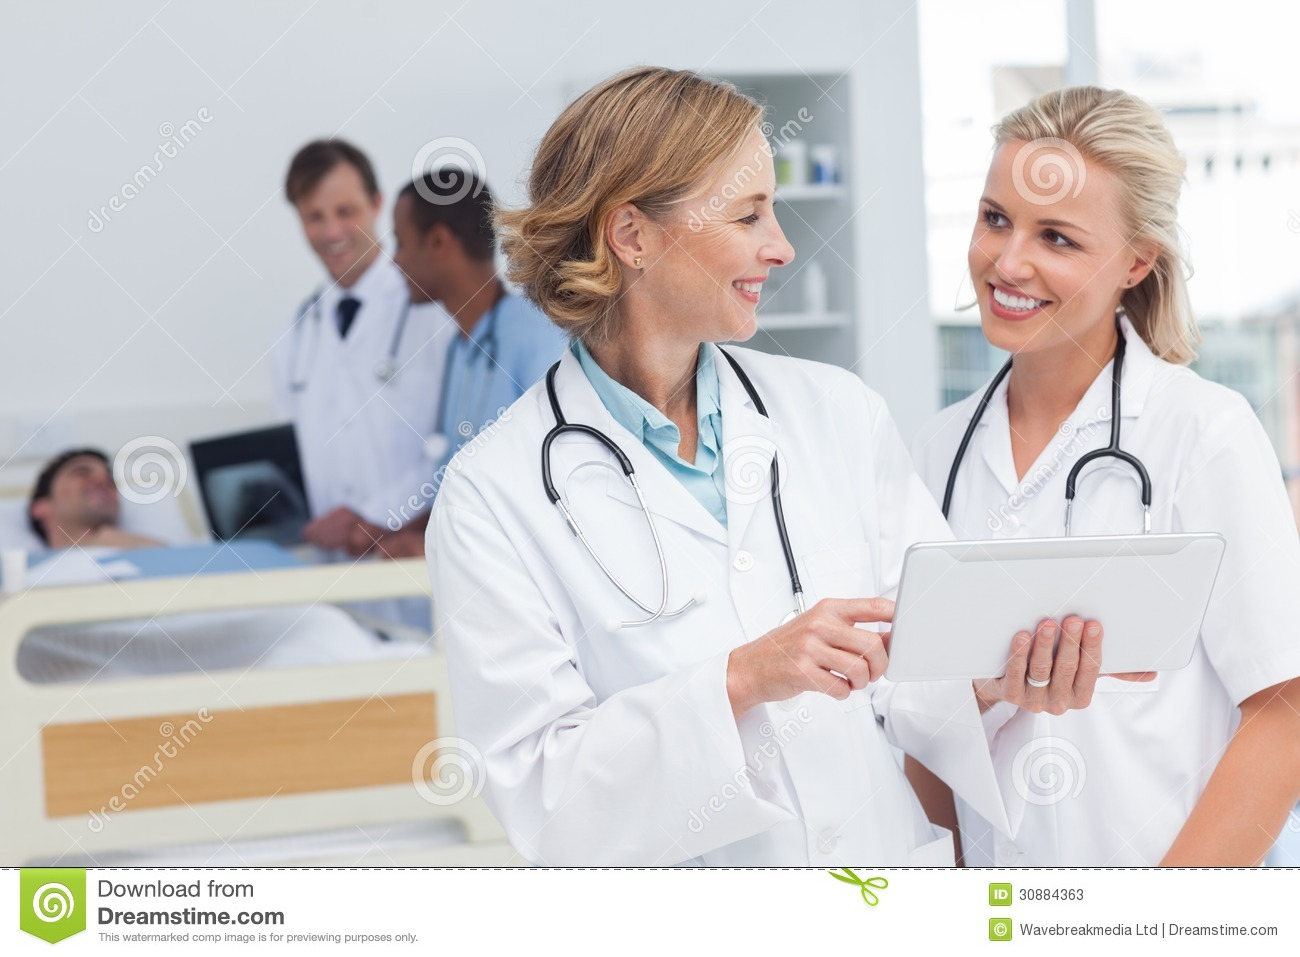 Smiling Doctors Talking To Each Other Stock Photos - Image: 30884363